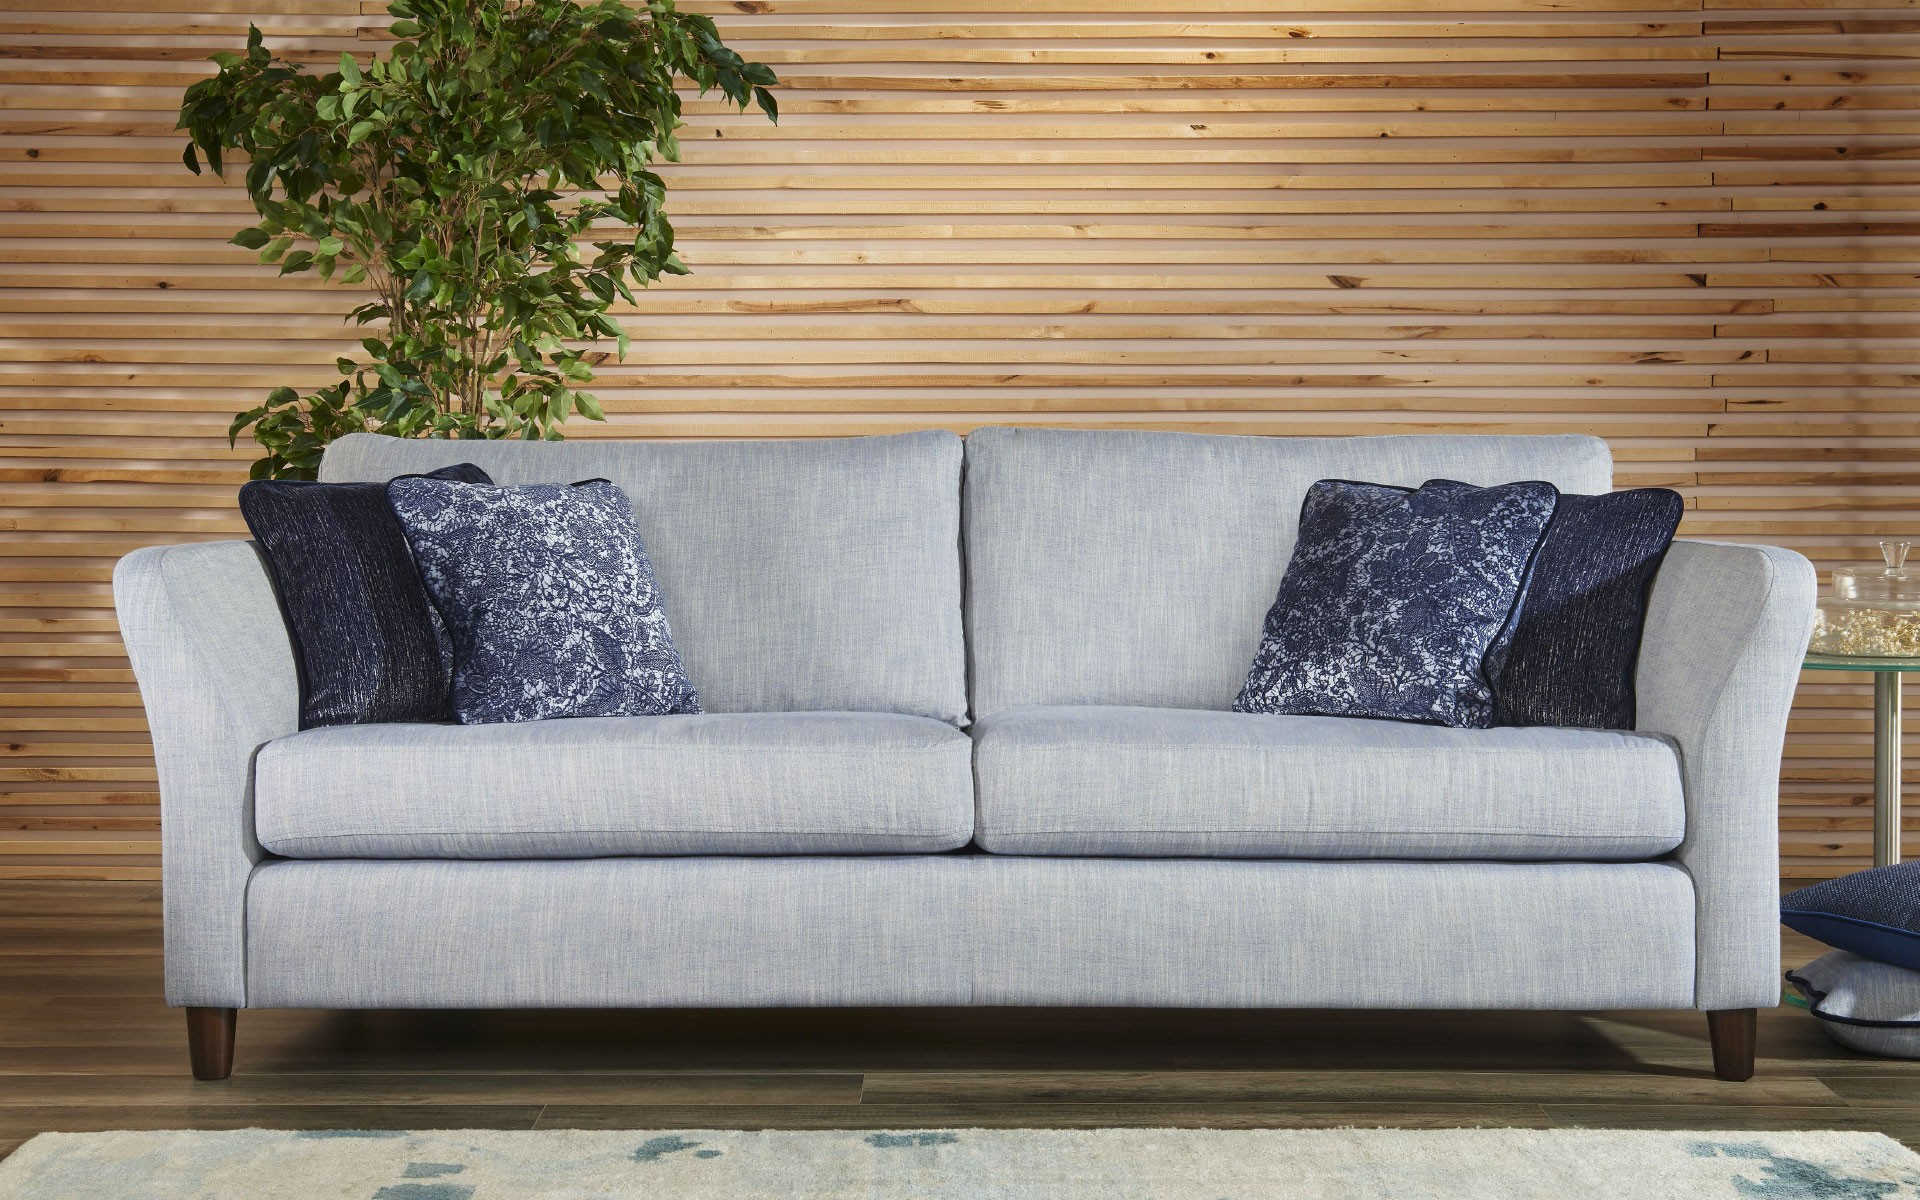 Marvelous The Hastings Sofa Company Linkedin Andrewgaddart Wooden Chair Designs For Living Room Andrewgaddartcom